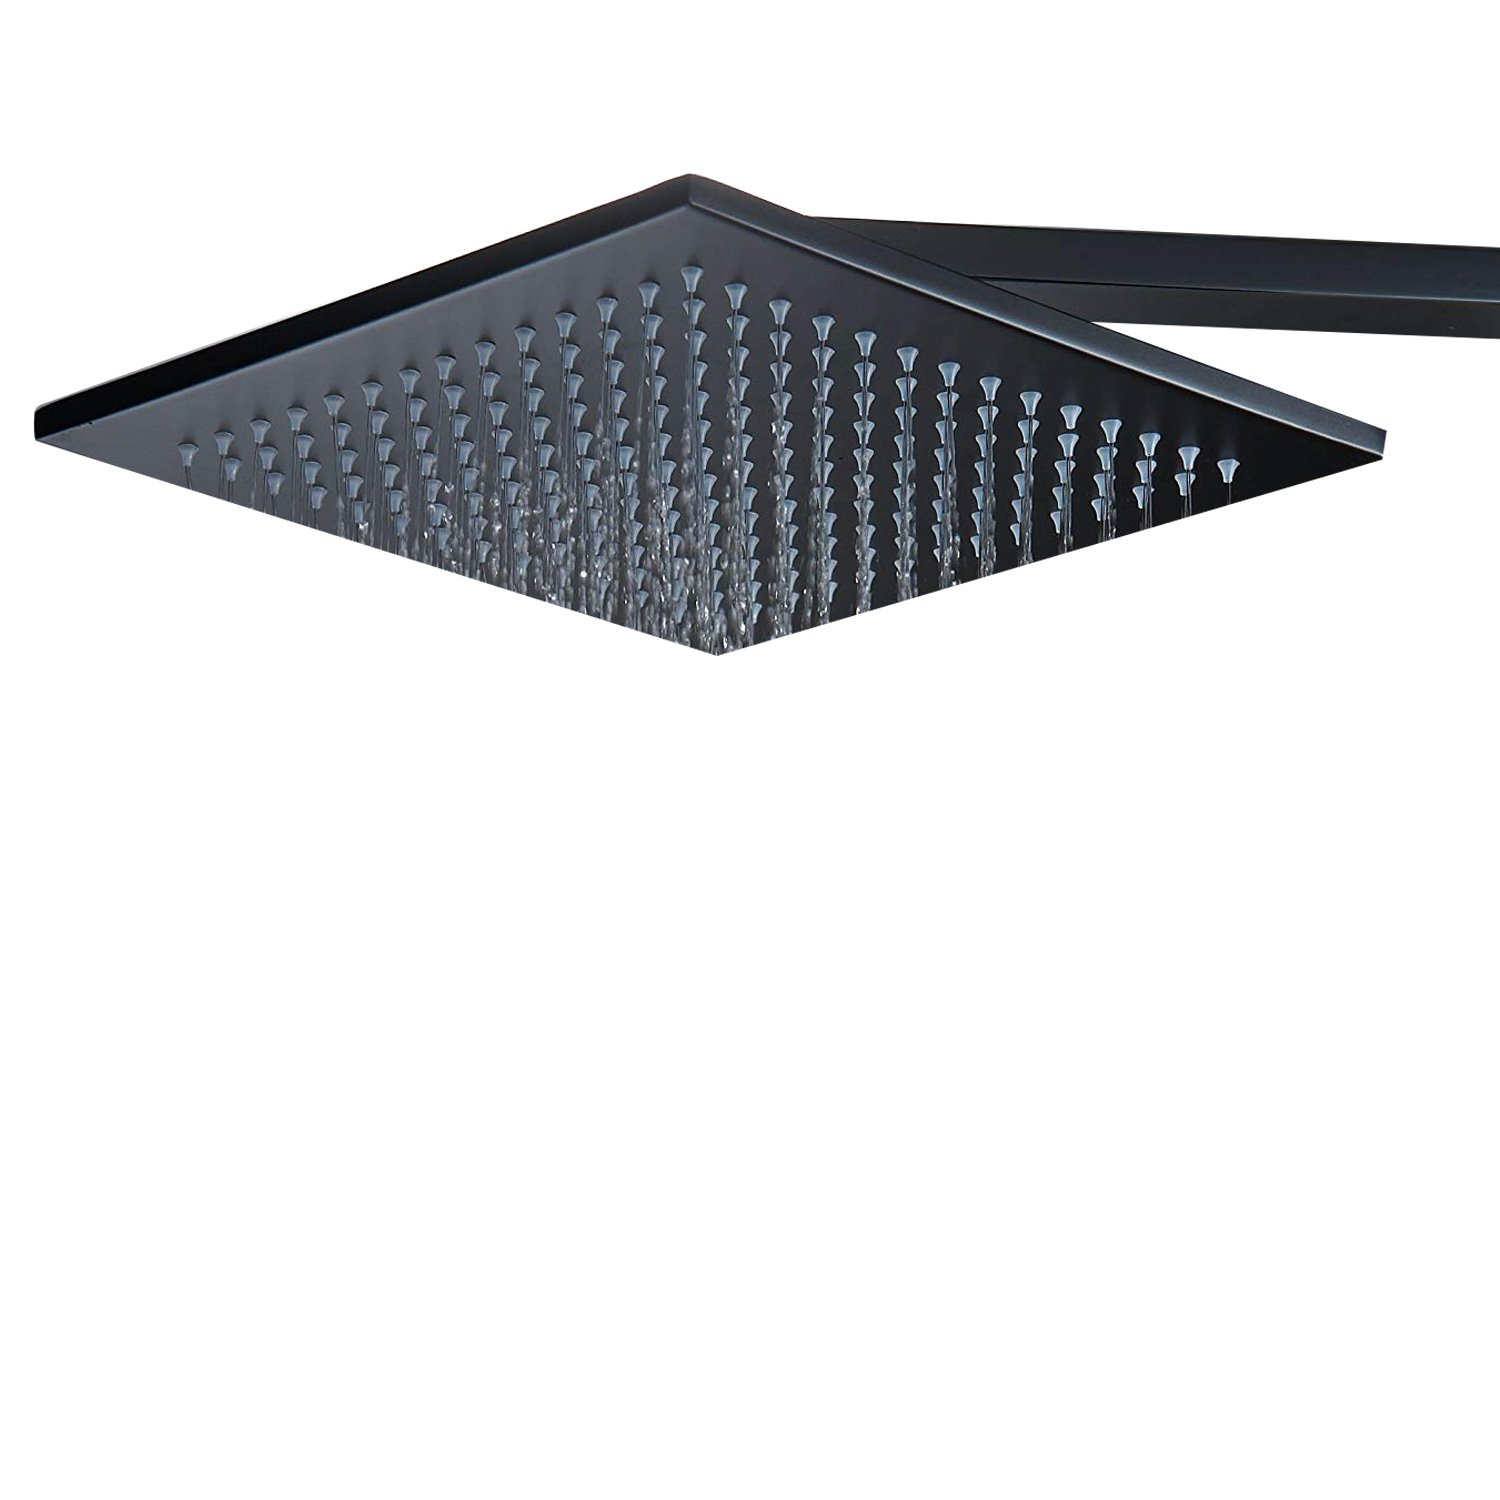 Aquafaucet Ceiling Mount Stainless Steel 10 Inches Square Rainfall Shower head Without Shower Arm Oil Rubbed Bronze